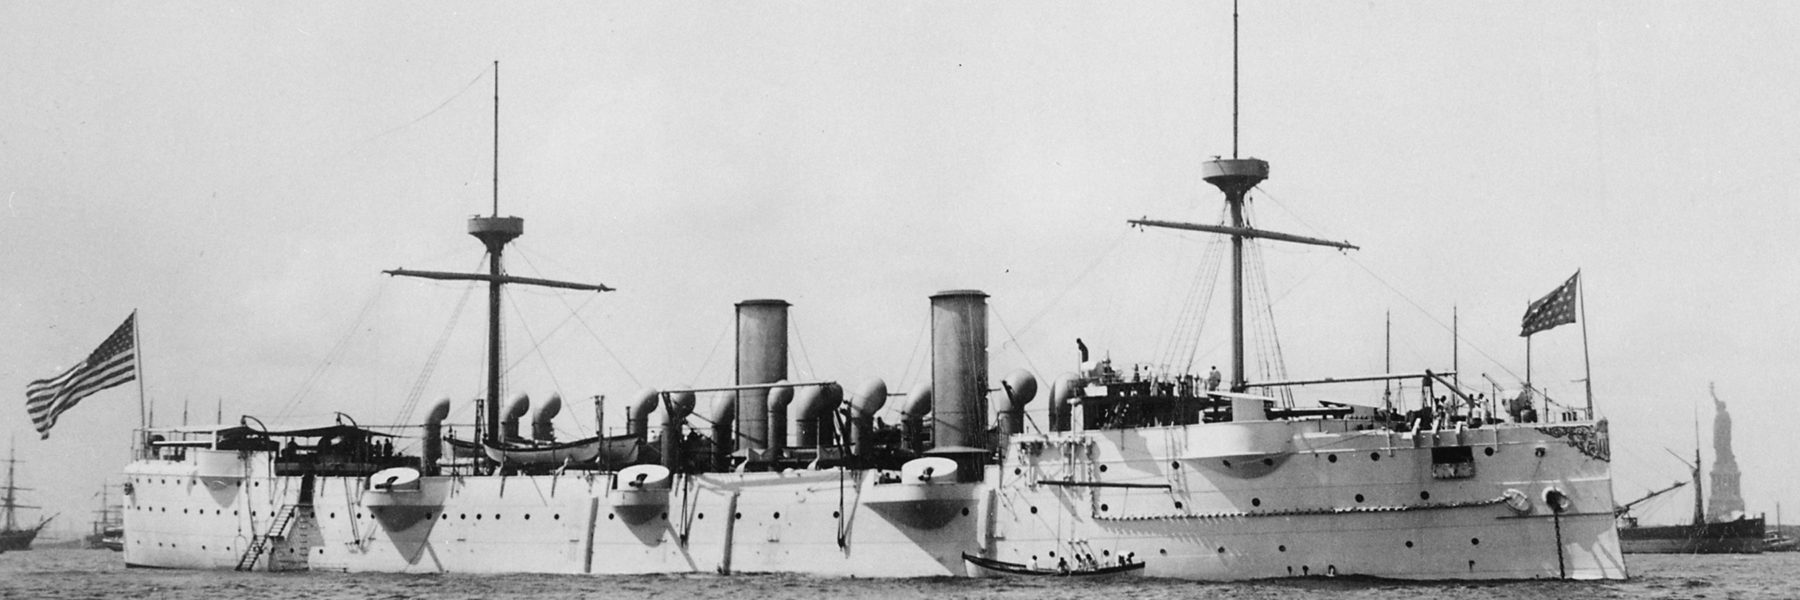 USS baltimore in New York - Statue of Liberty can be seen to the right in the foreground.